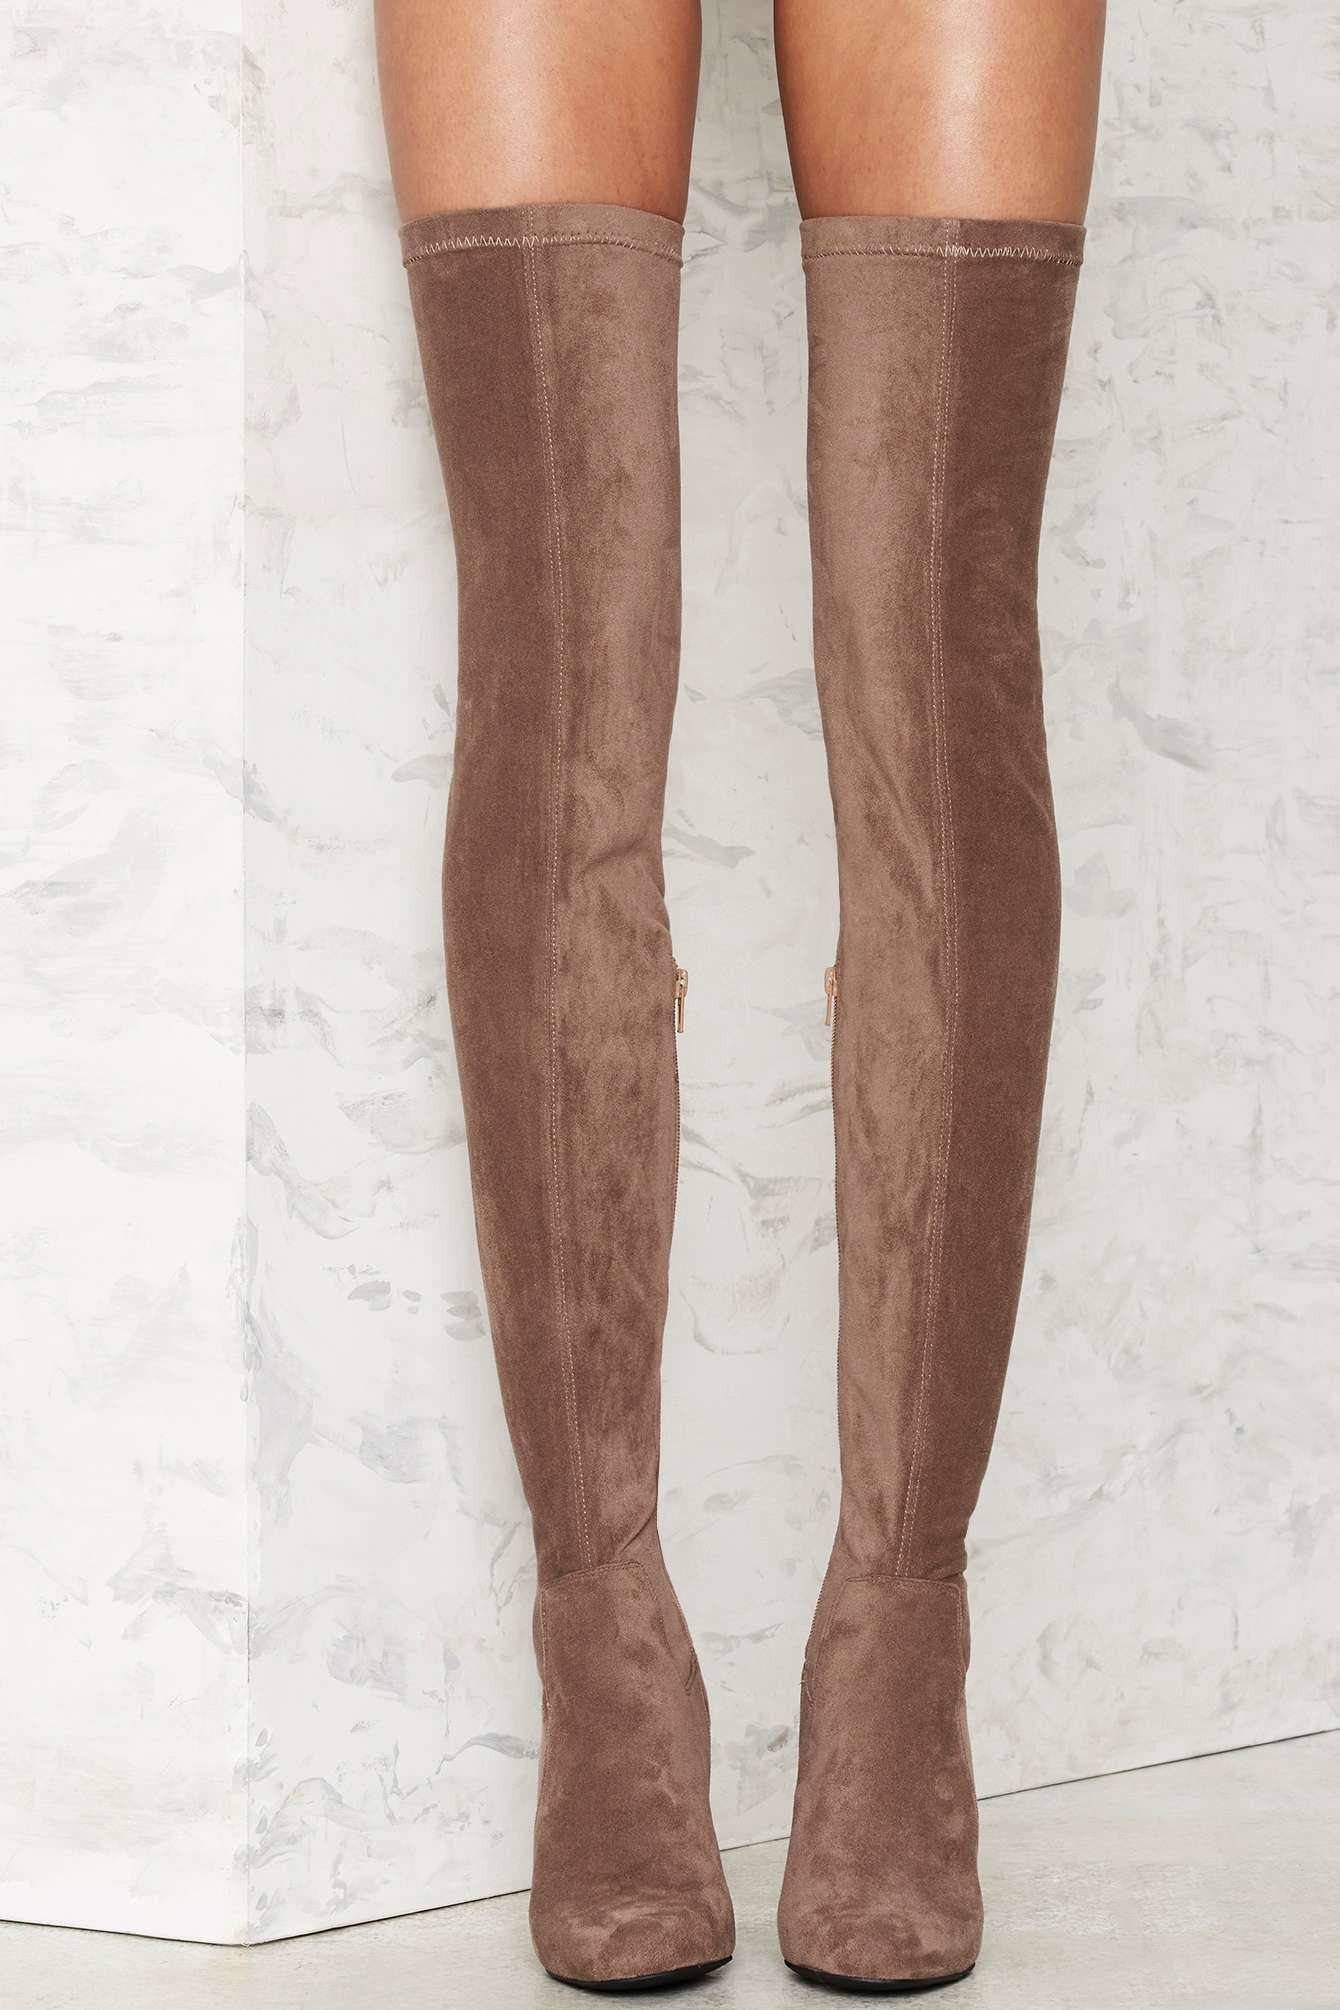 Jeffrey campbell Perouze Thigh-high Boot - Taupe in Natural | Lyst